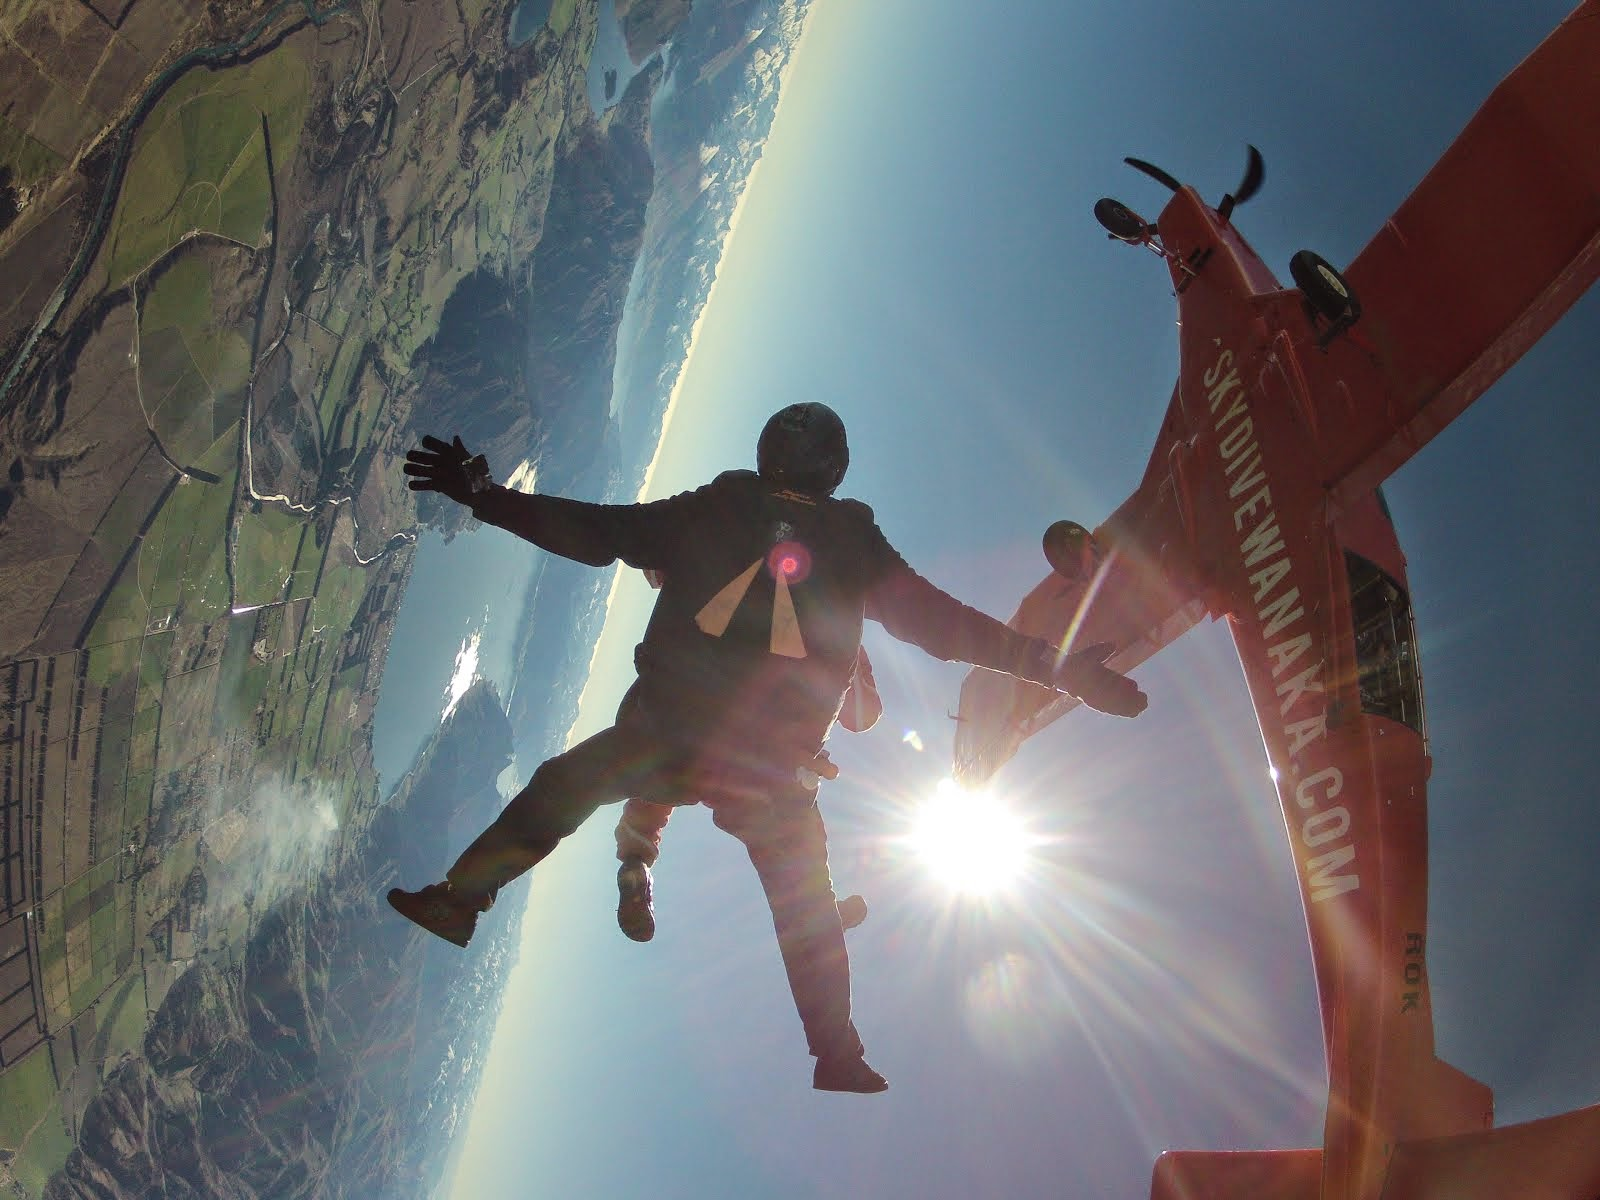 Skydive - Lake Wanaka NZ